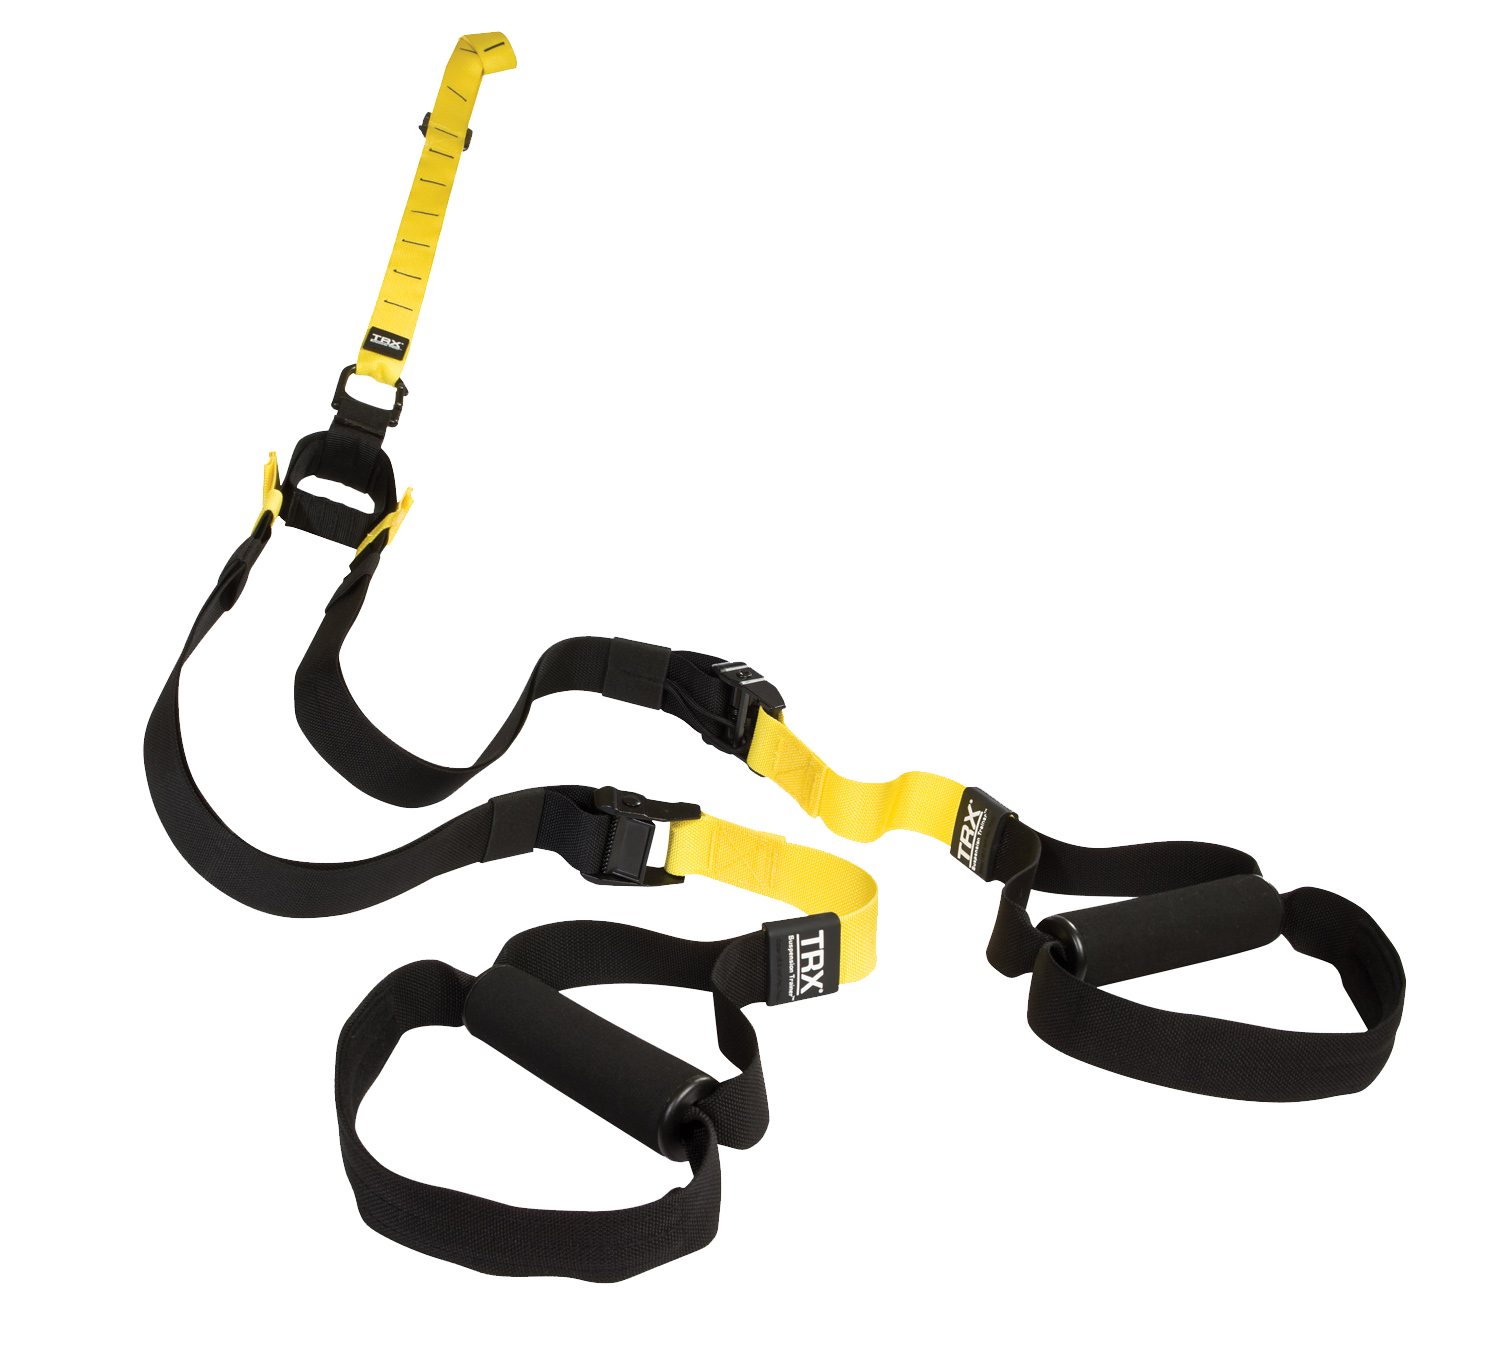 Resistance Bands Meaning: Upgrade These 5 Exercises With The TRX Suspension Trainer